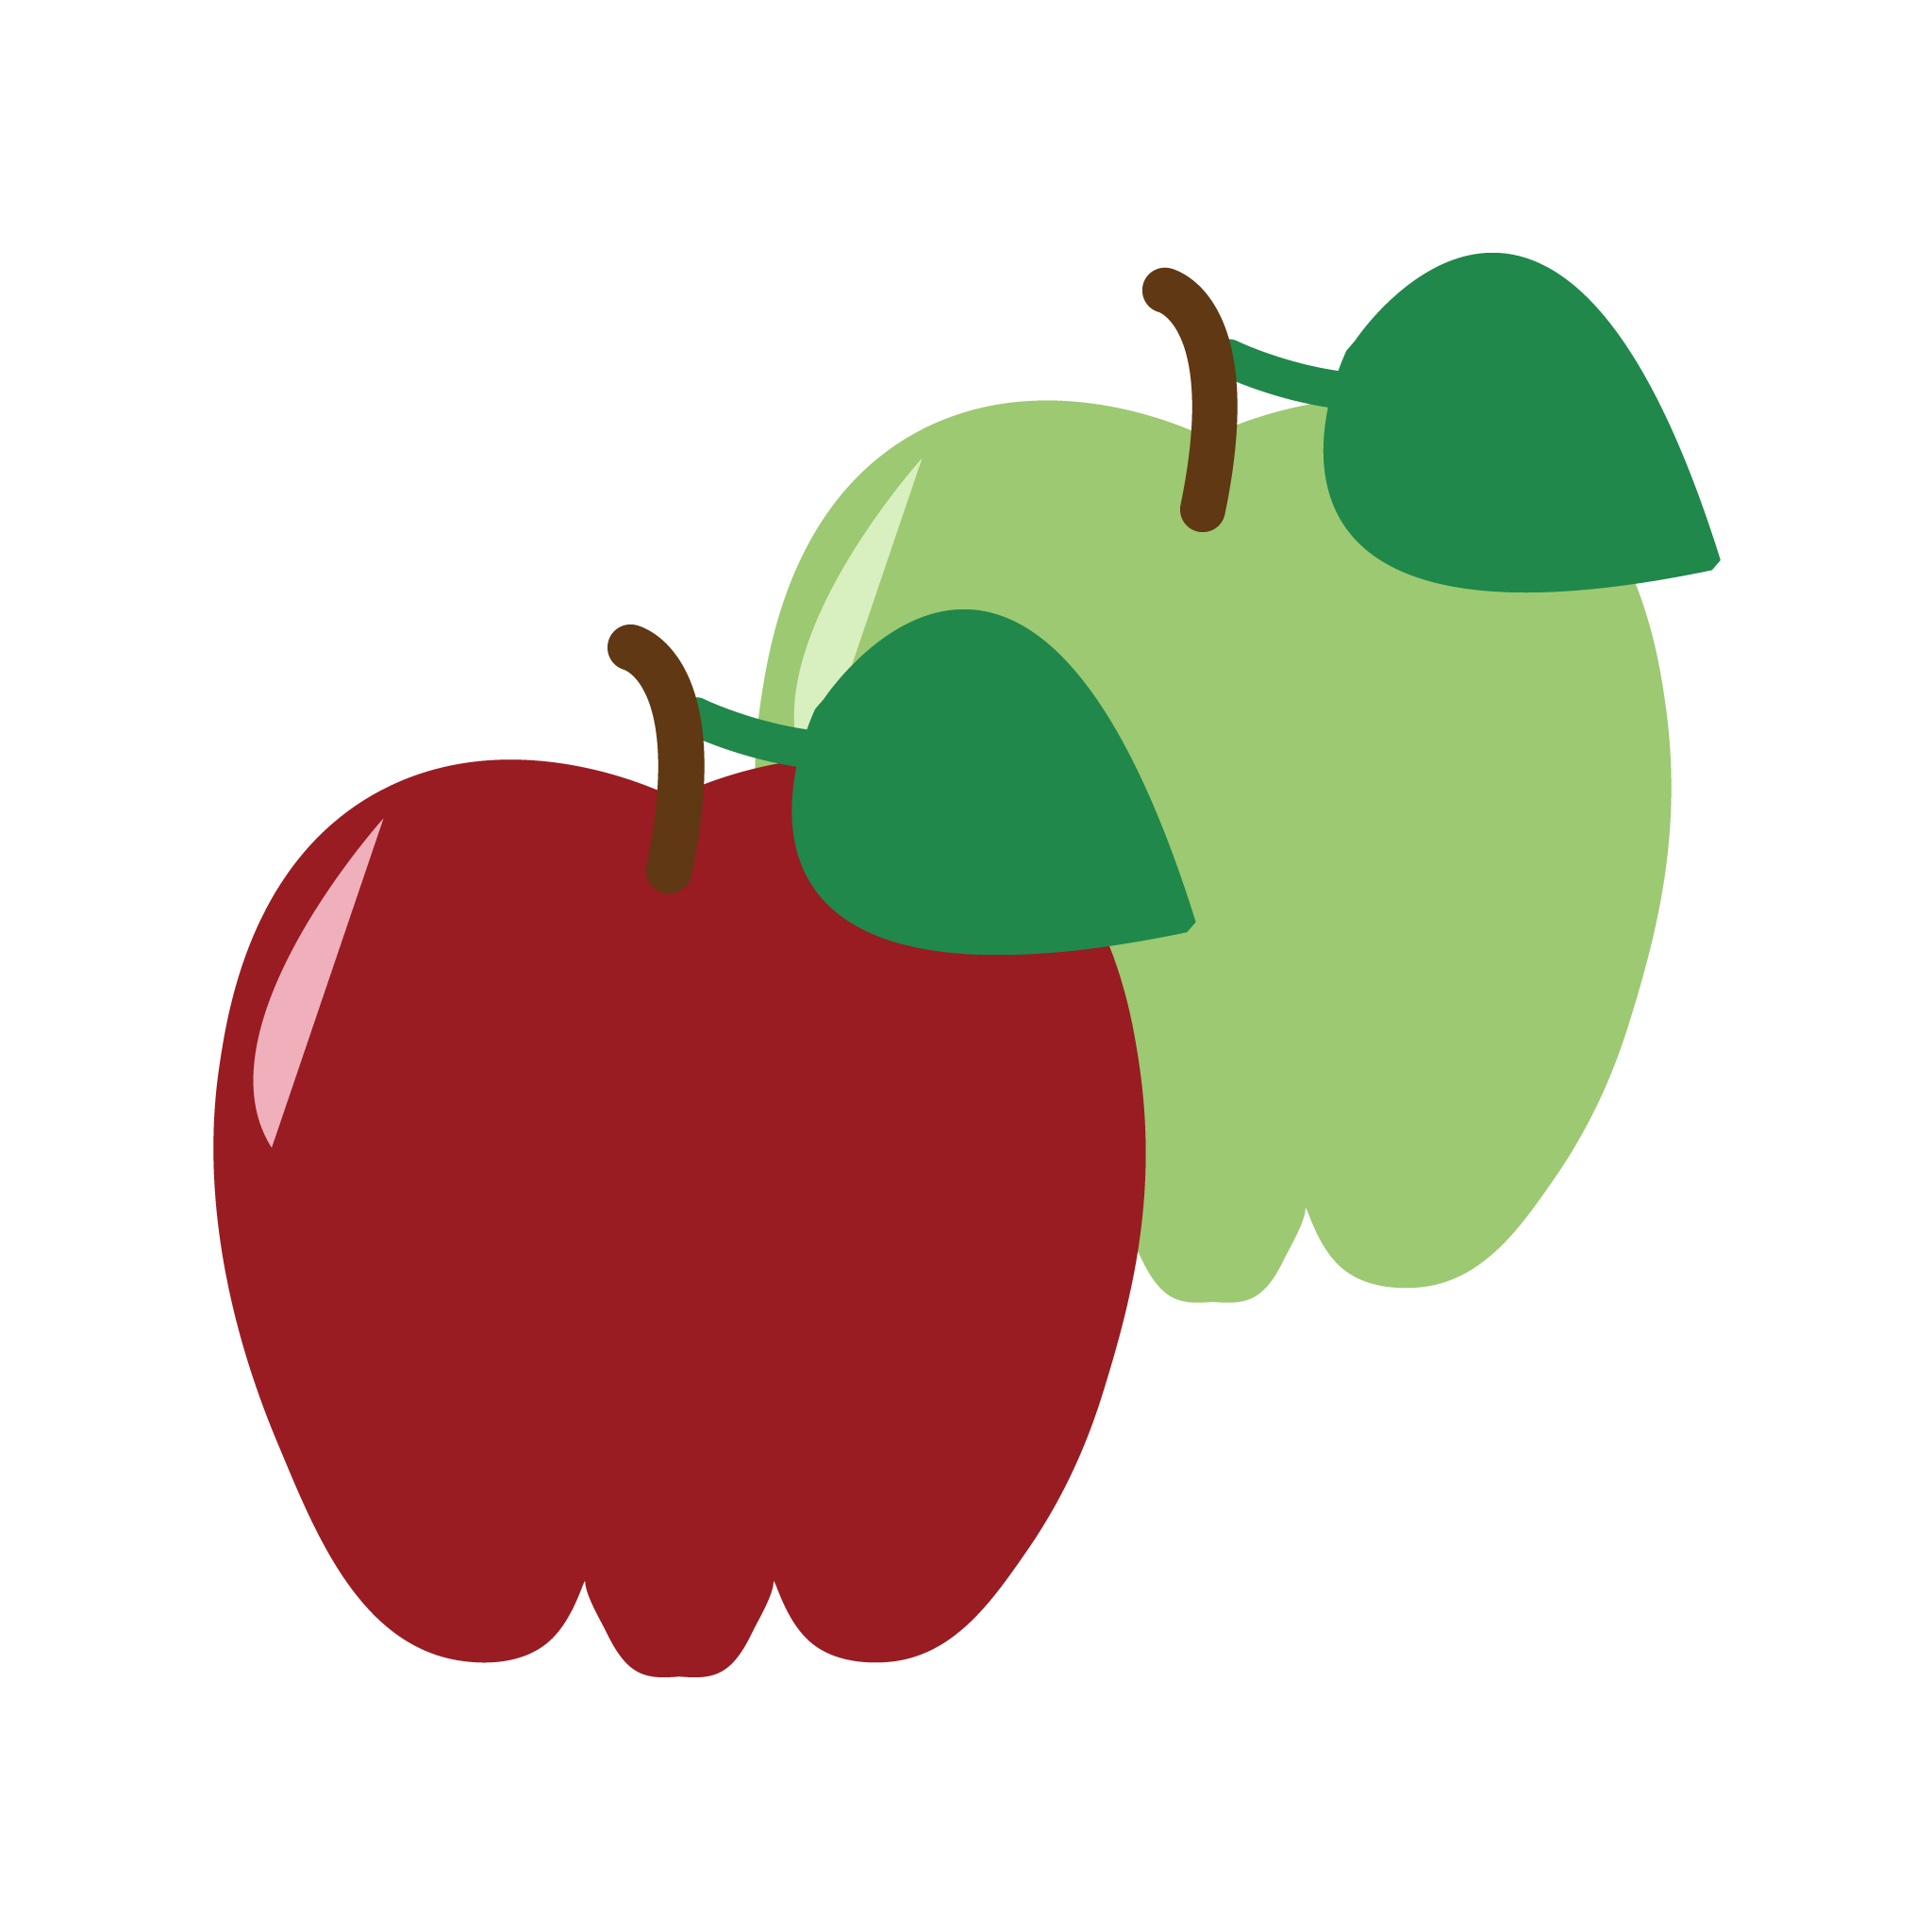 Apple flavor graphic for INFUSION drink manufactured by Bubble Sip, LLC.